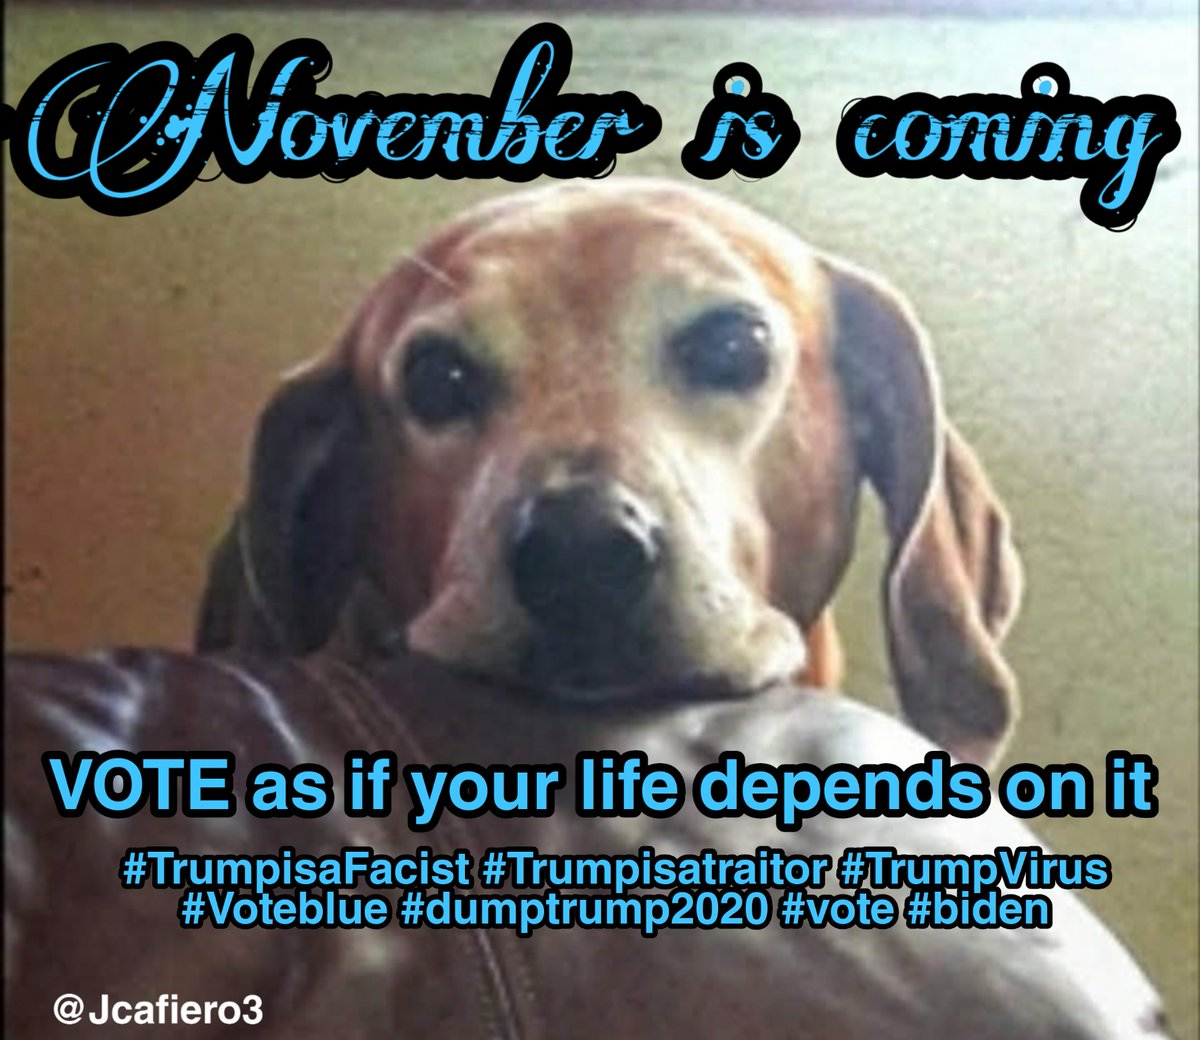 #NovemberIsComing #VoteBlueToSaveAmerica2020 #VoteByMail #Resist  #resisters must unite now more than ever before.  113 days till November 3rd. #Voteblue #Resisters #GoJoe2020 #RidinWithBiden #CreepyTrump https://t.co/QwV7kGP185